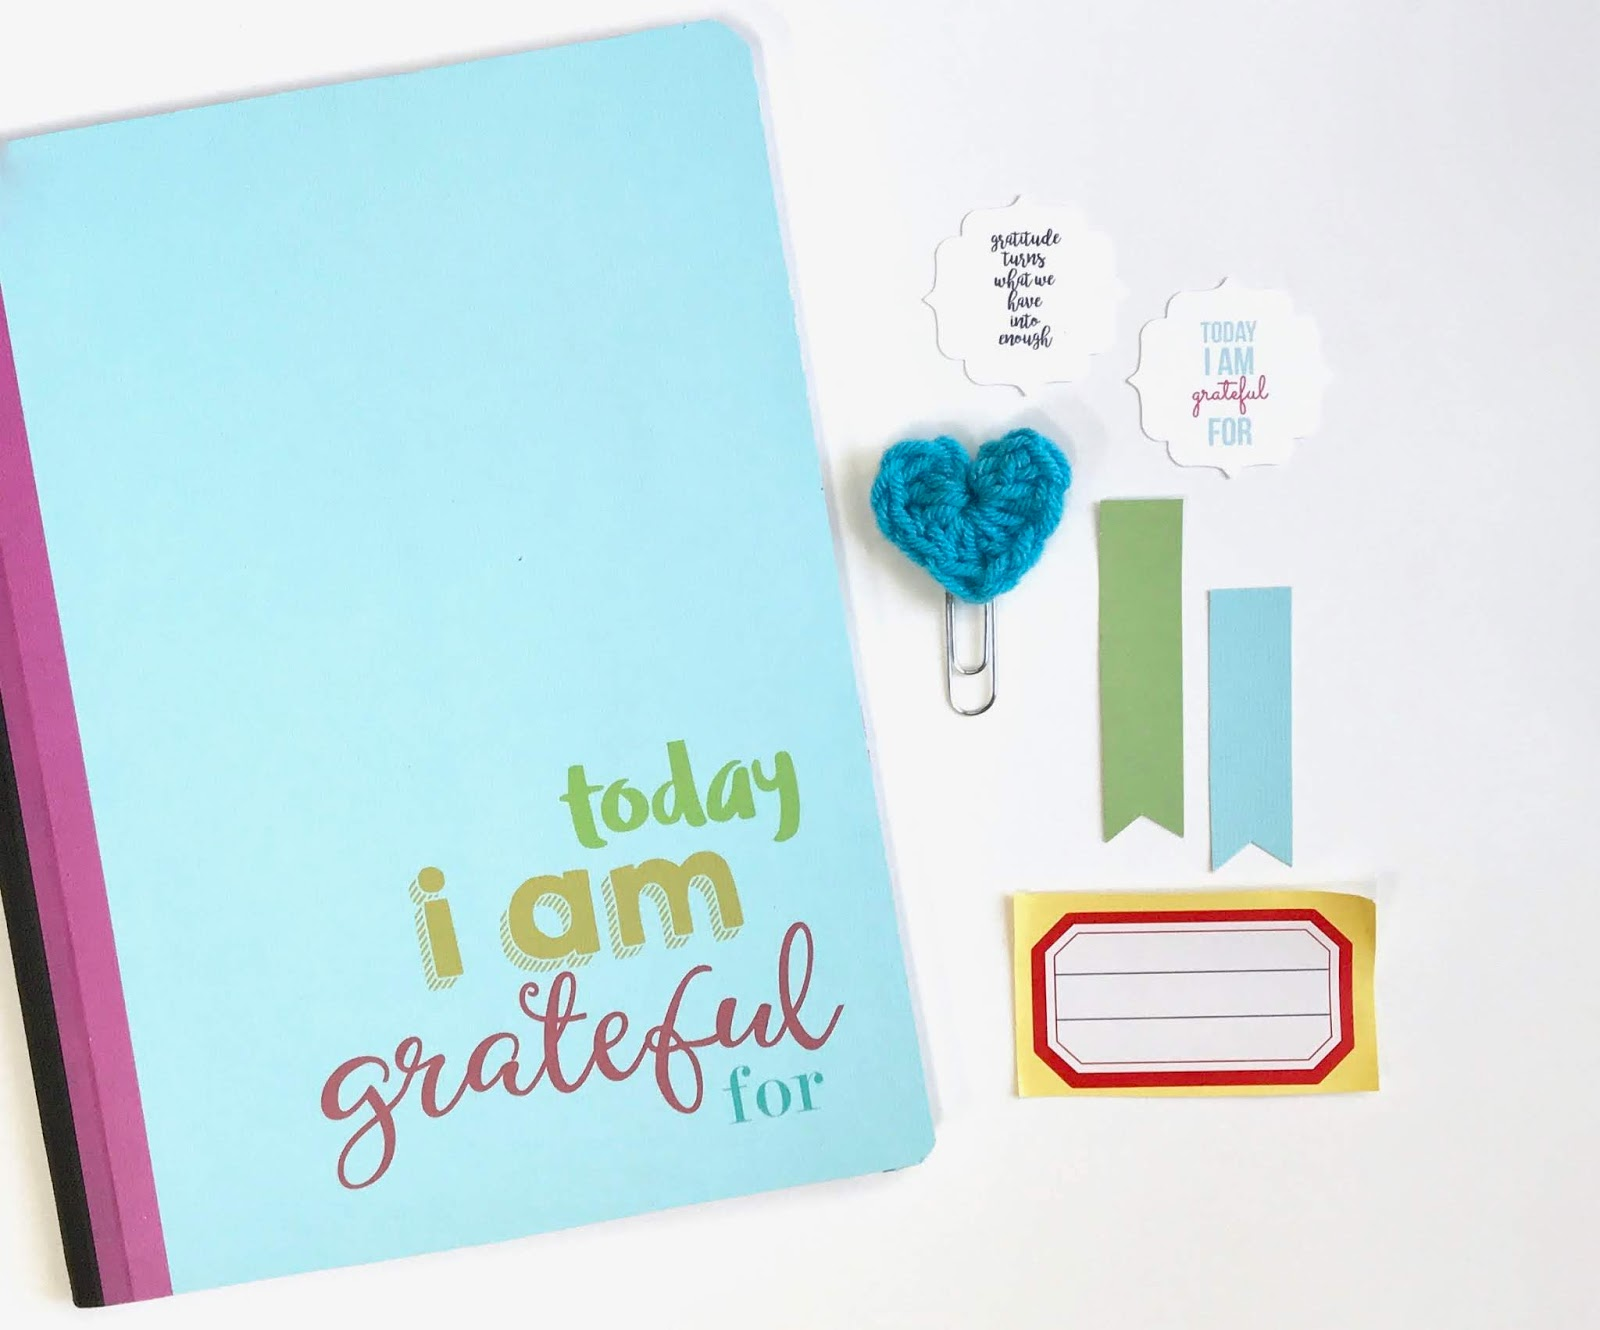 #gratitude #gratitude journal #journaling #Today I Am Grateful For #thankful #thankfulness #I Am Thankful For